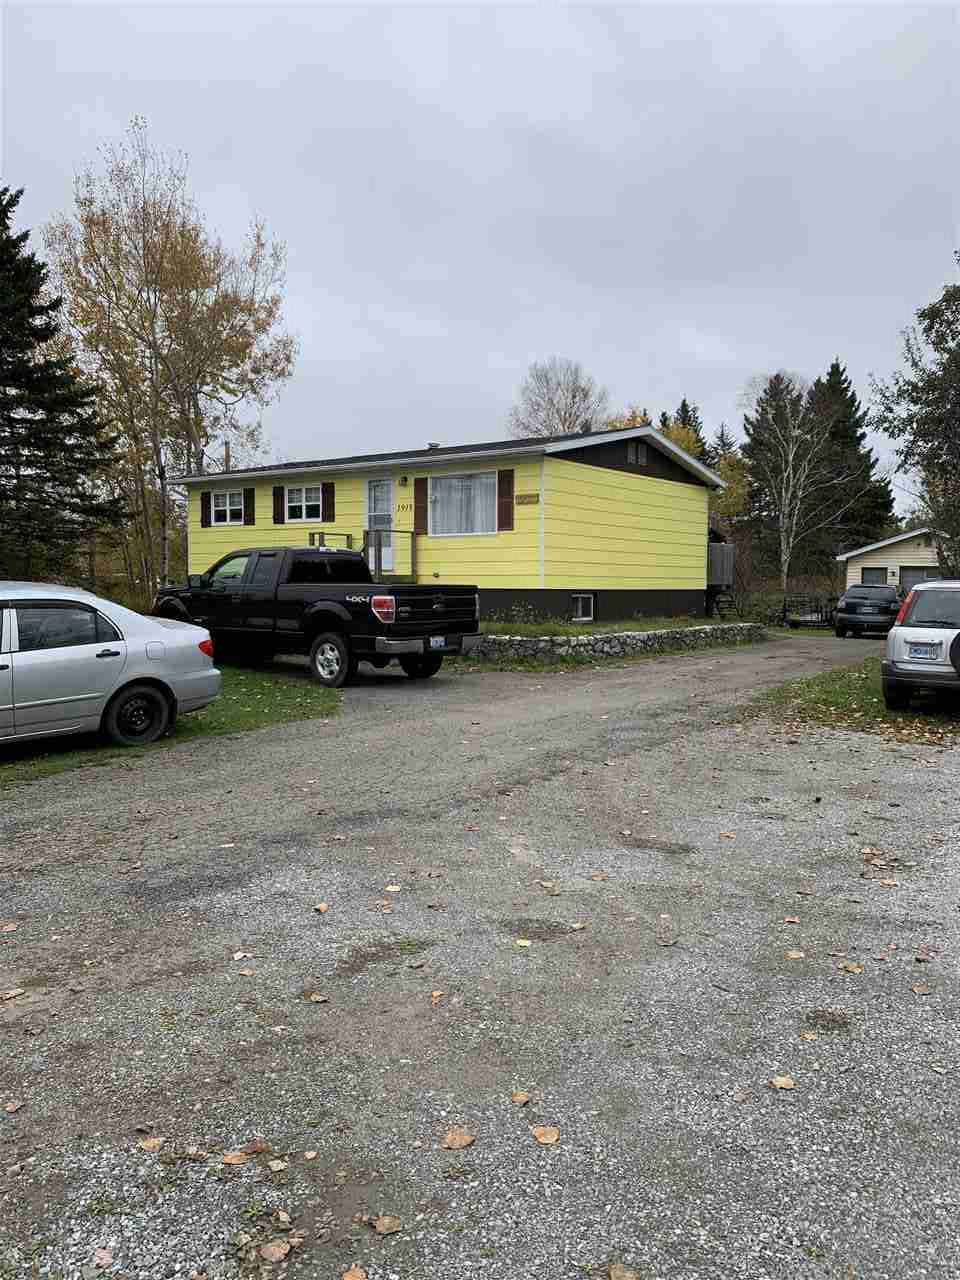 Main Photo: 1915 Kings Road in Howie Centre: 207-C. B. County Residential for sale (Cape Breton)  : MLS®# 202022301